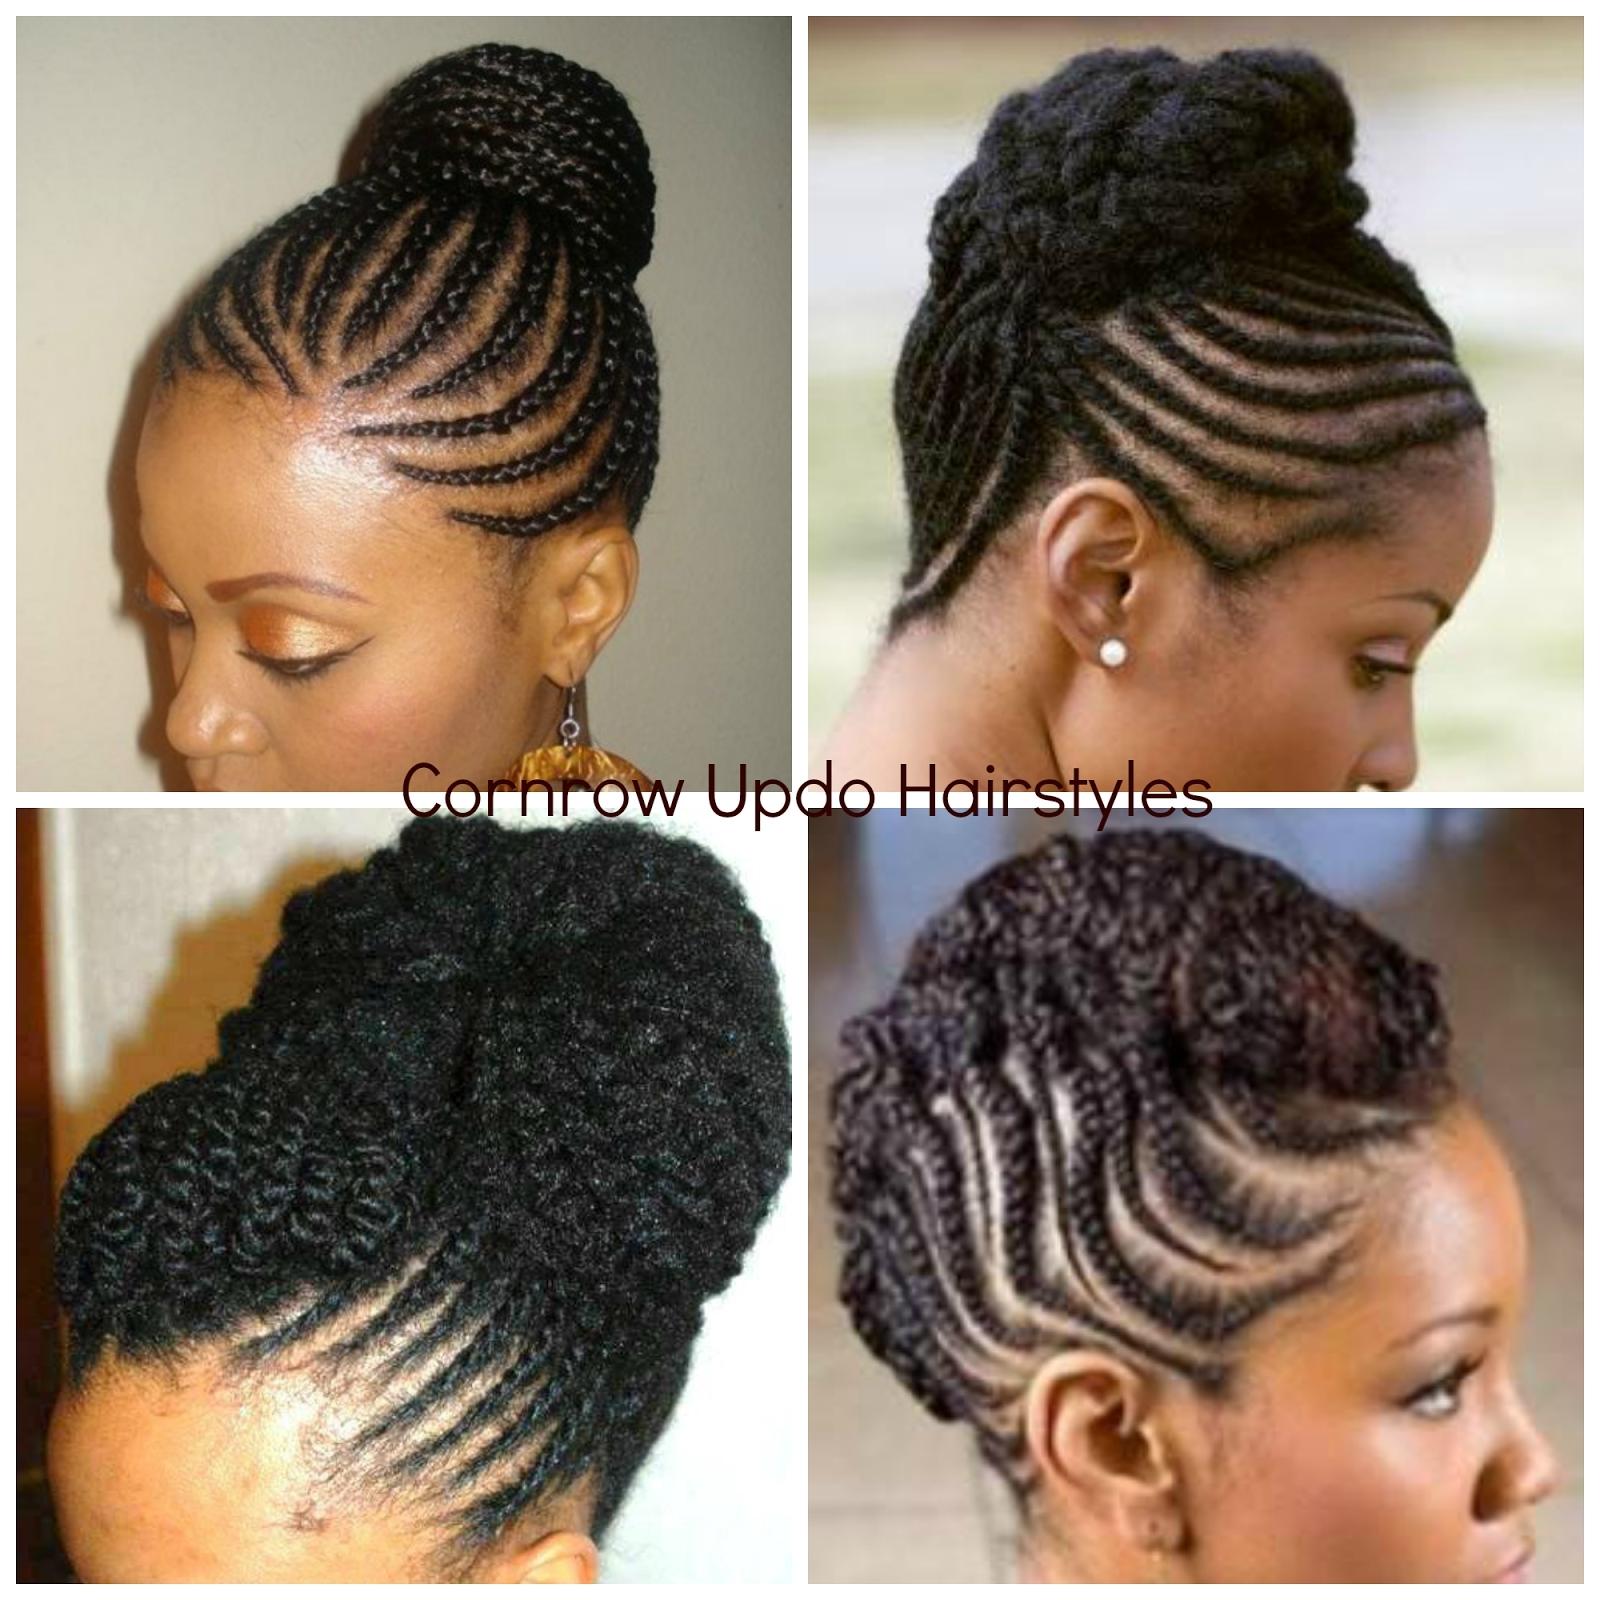 Photo: African American Cornrow Updo Hairstyles 4 Natural Hair 10 With Twist Updo Hairstyles For Black Hair (View 9 of 15)